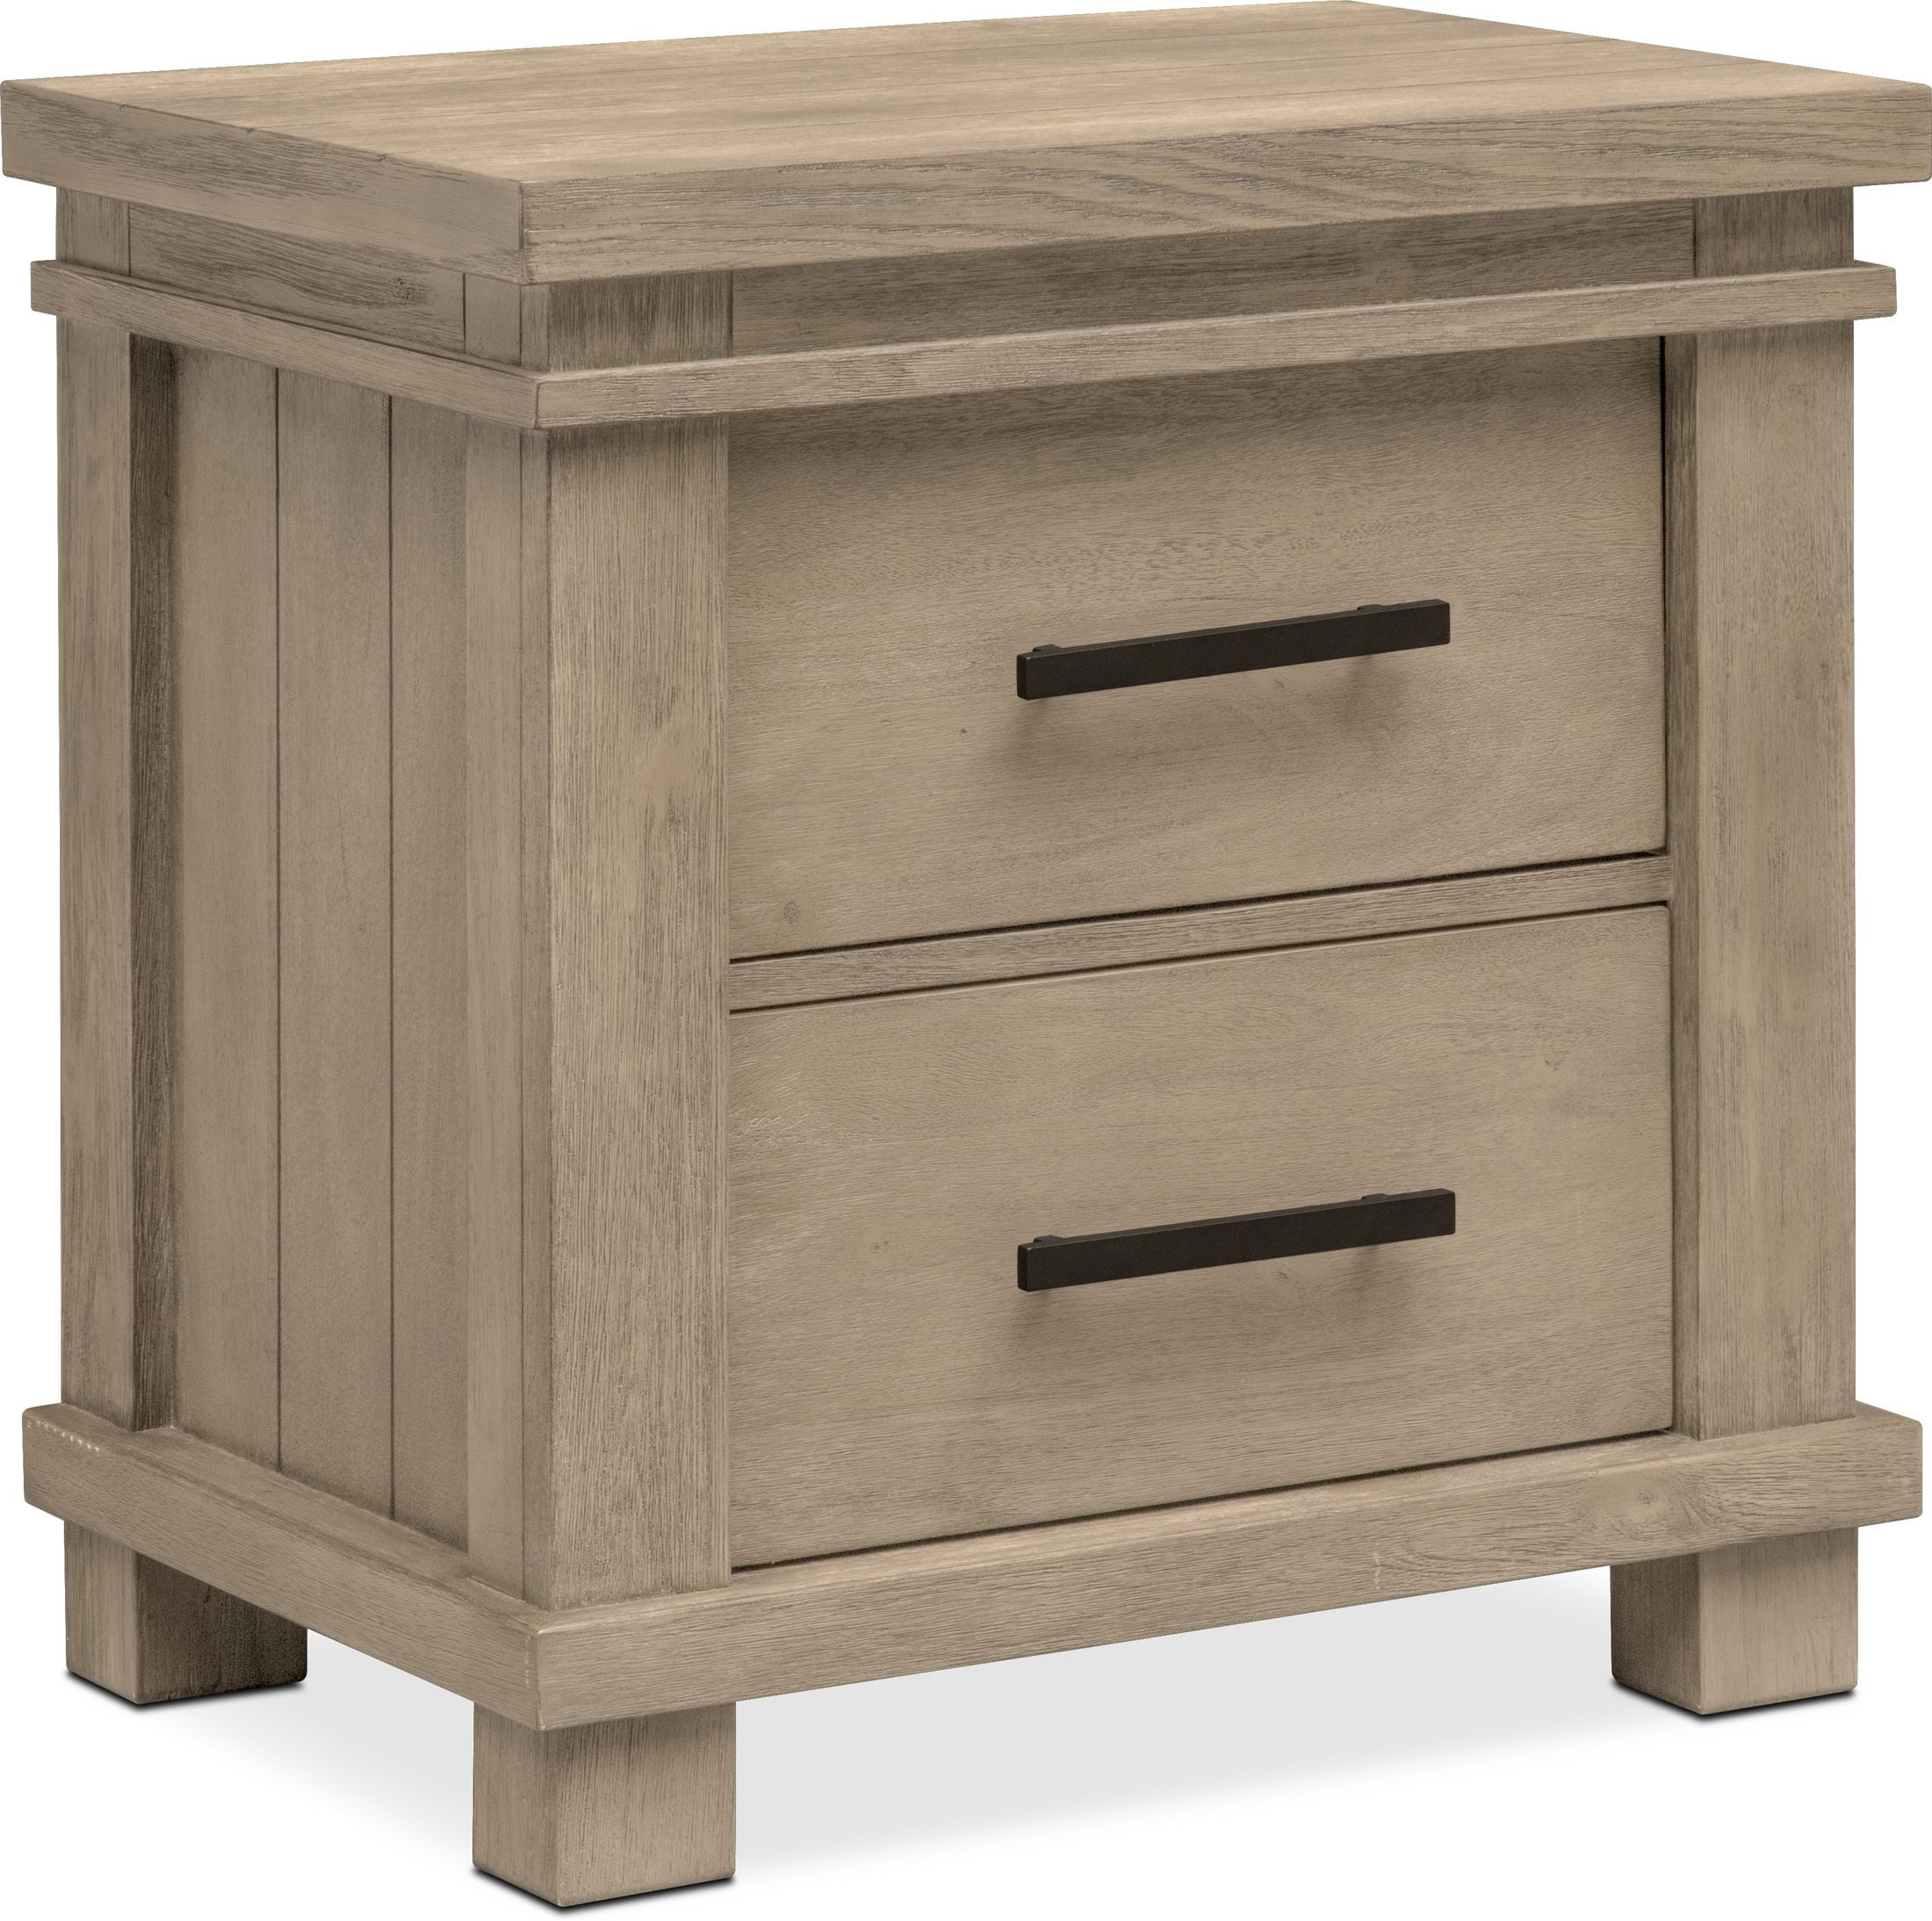 Bedroom Furniture - Tribeca Nightstand